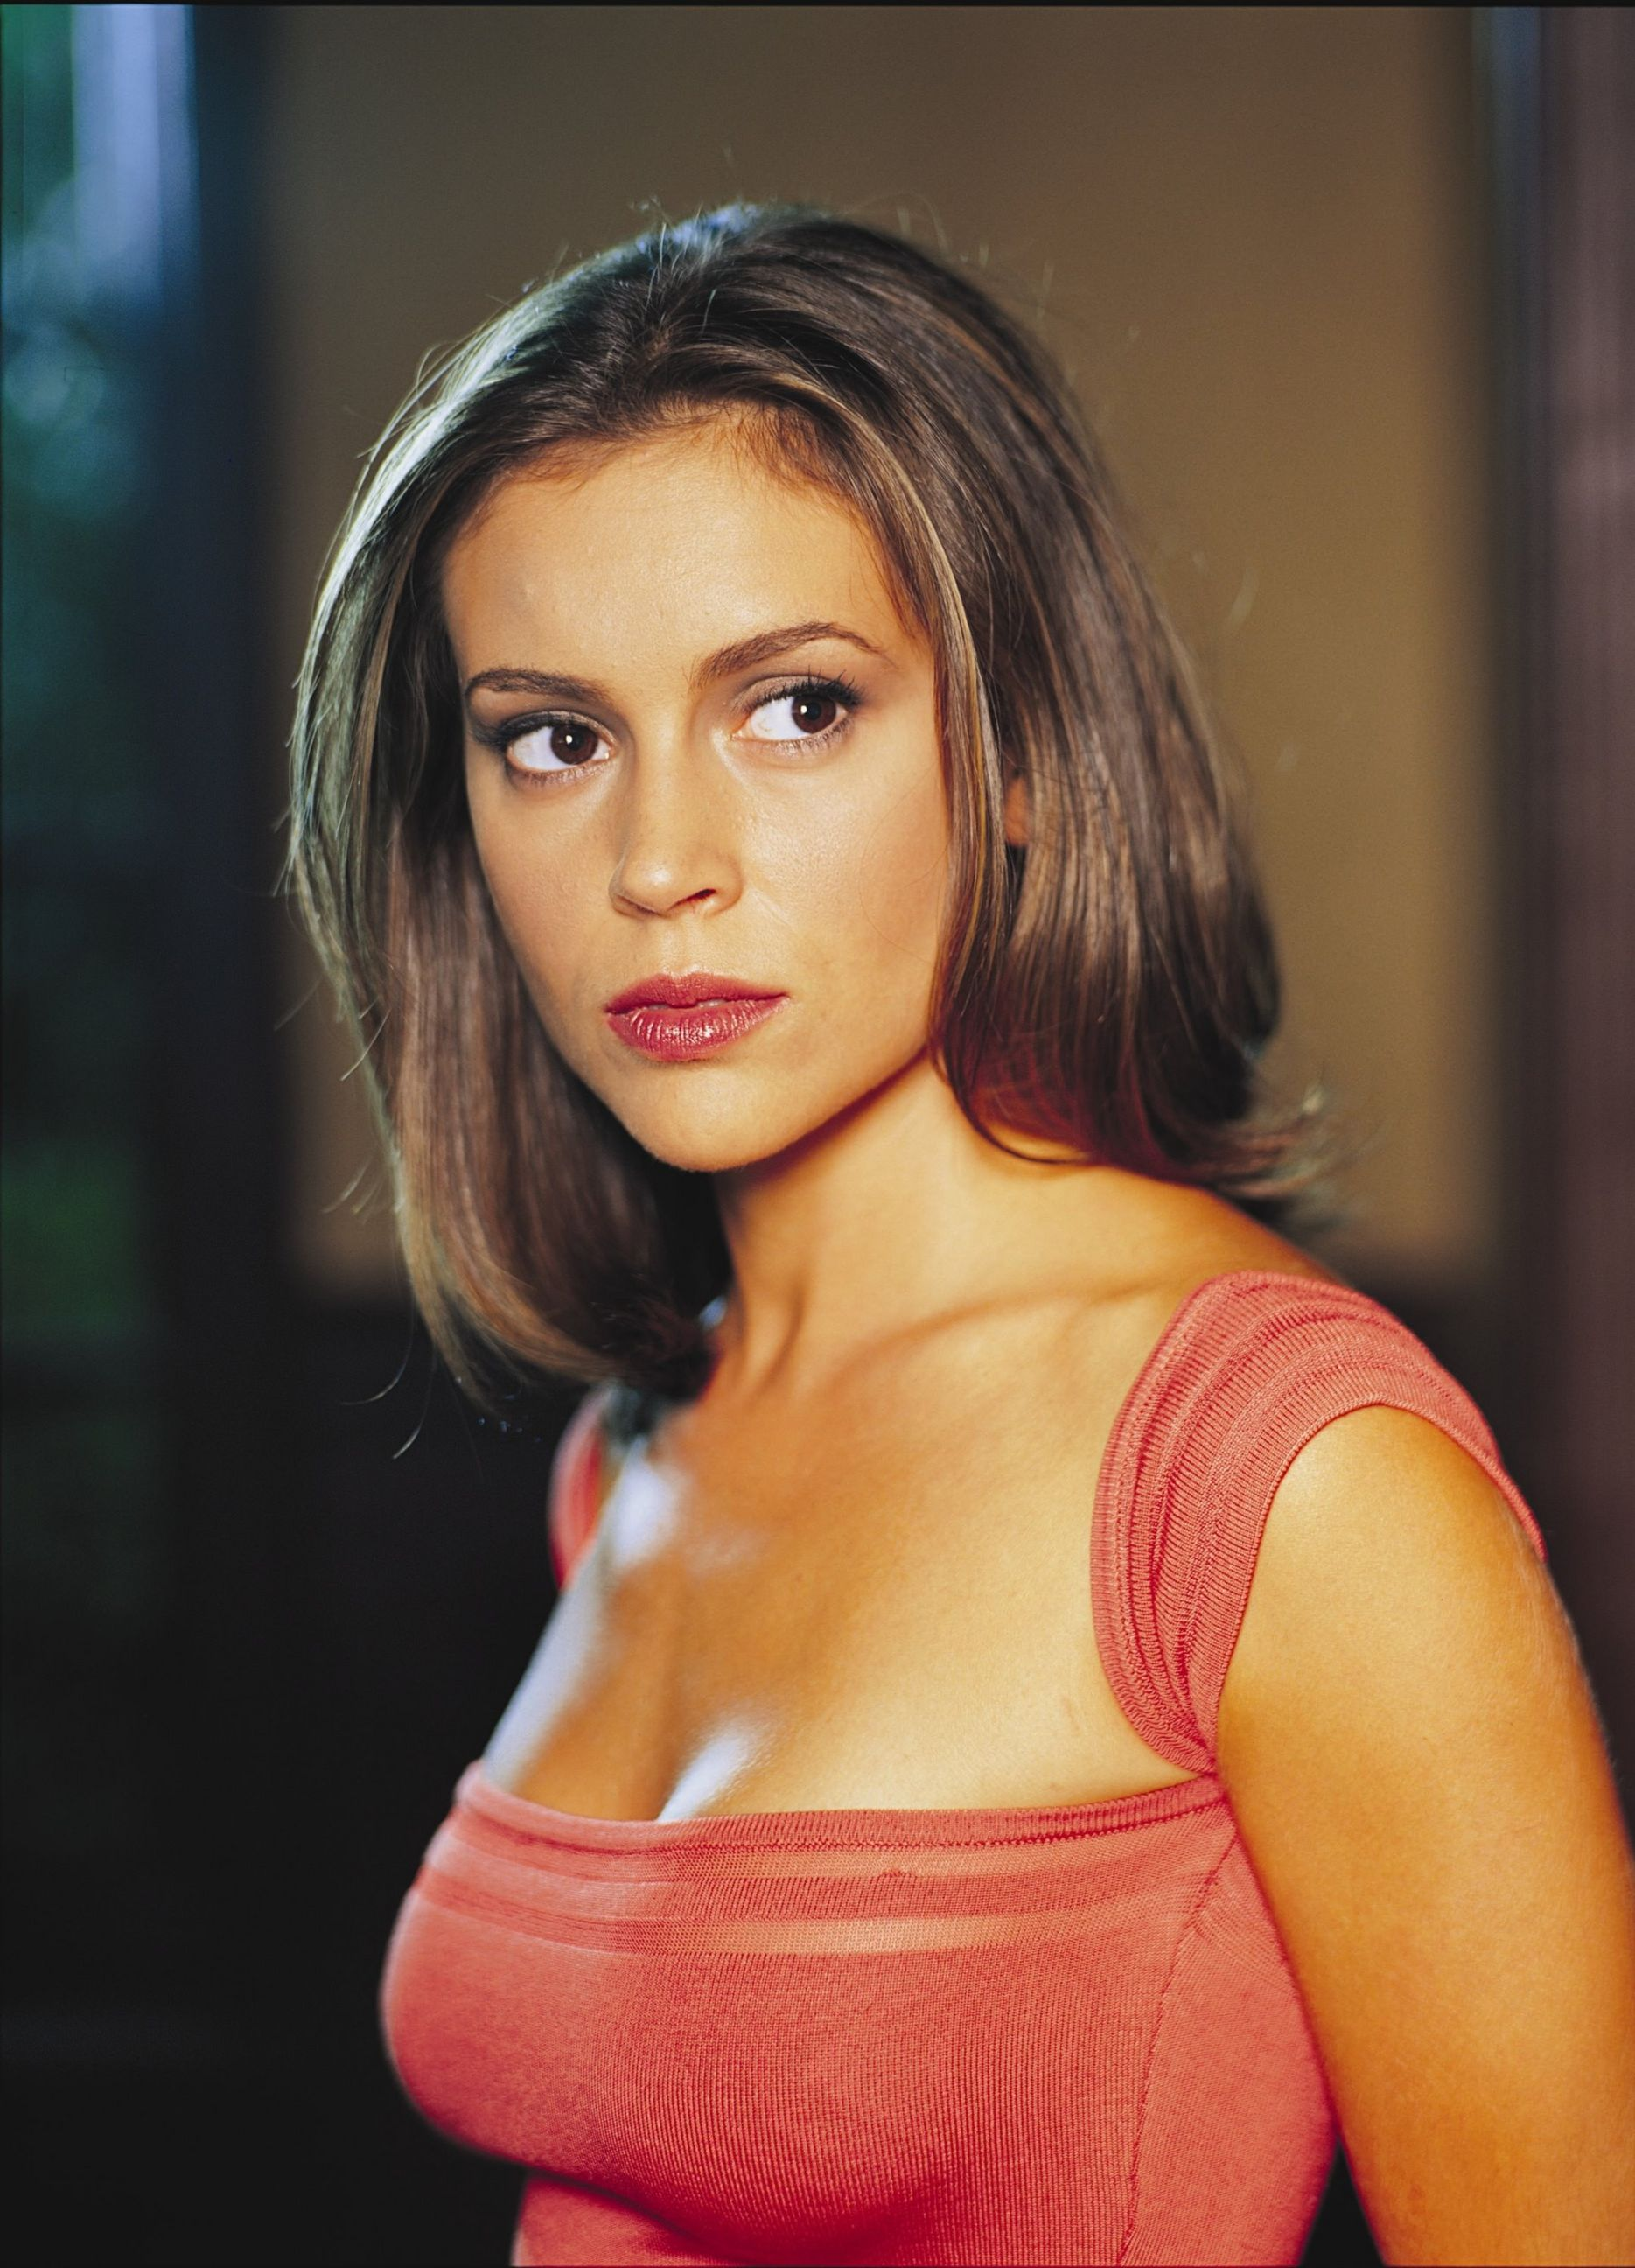 Charmed alyssa milano phoebe s2 dvdbash13 dvdbash published 10 february 2012 at 1869 2592 in charmed altavistaventures Choice Image